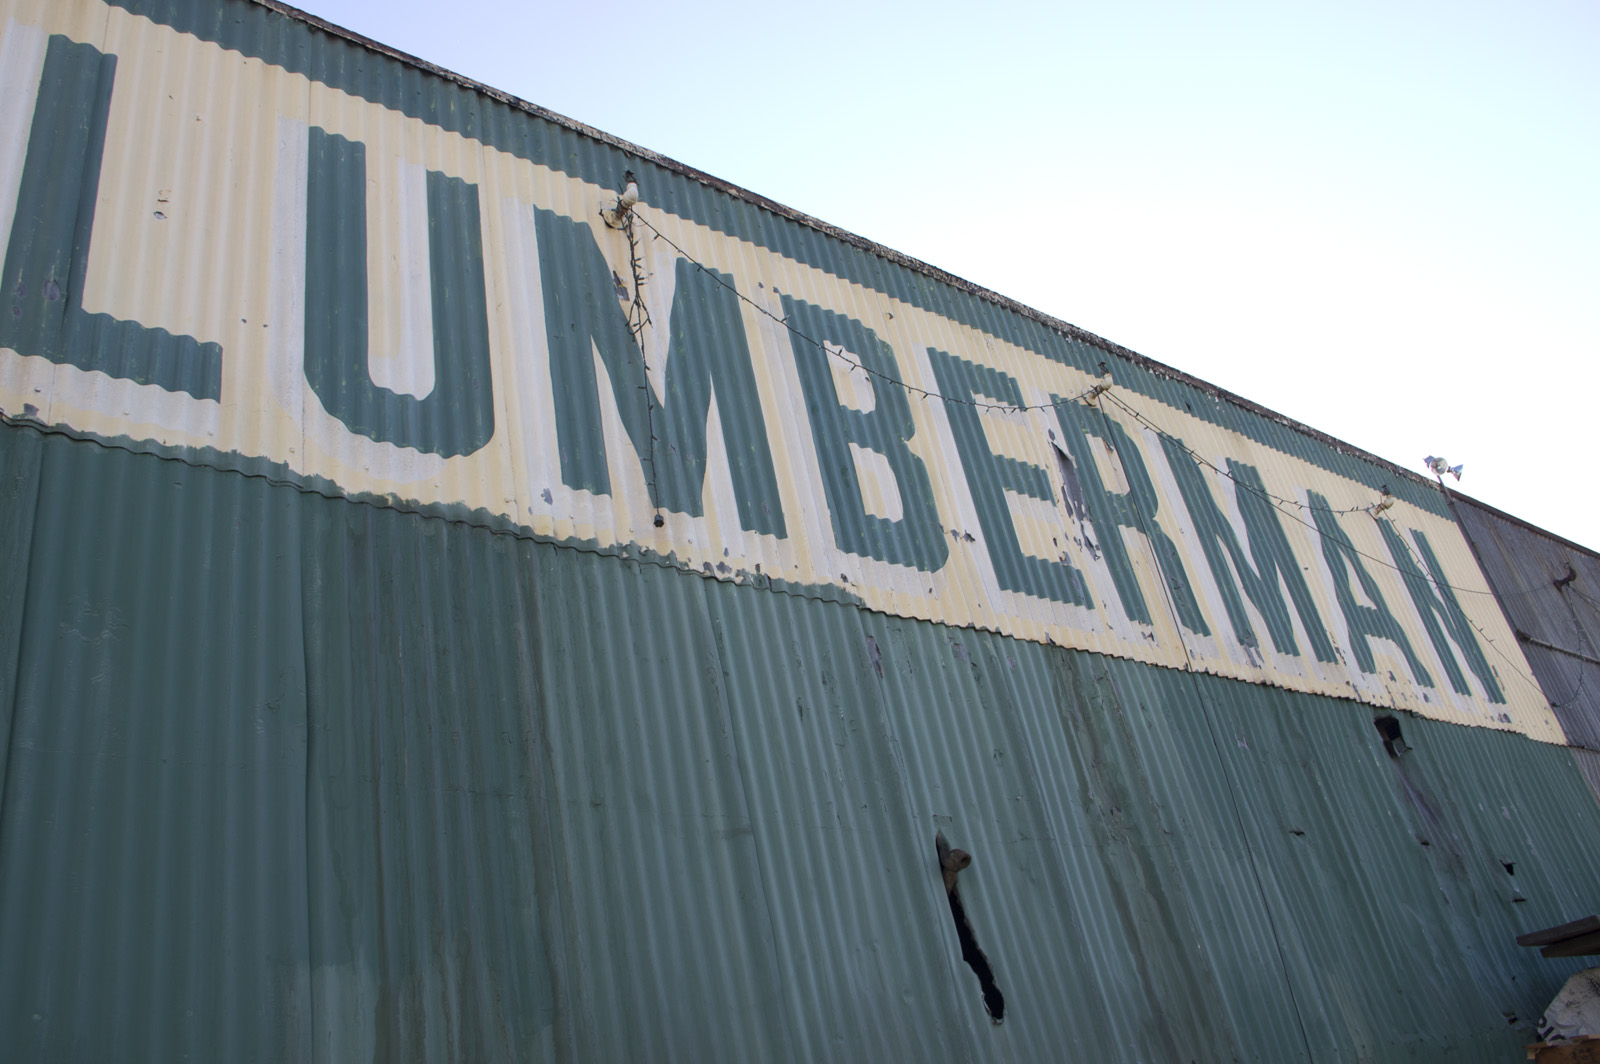 The Lumberman sign looms large over the Mission. Photo by Mateo Hoke